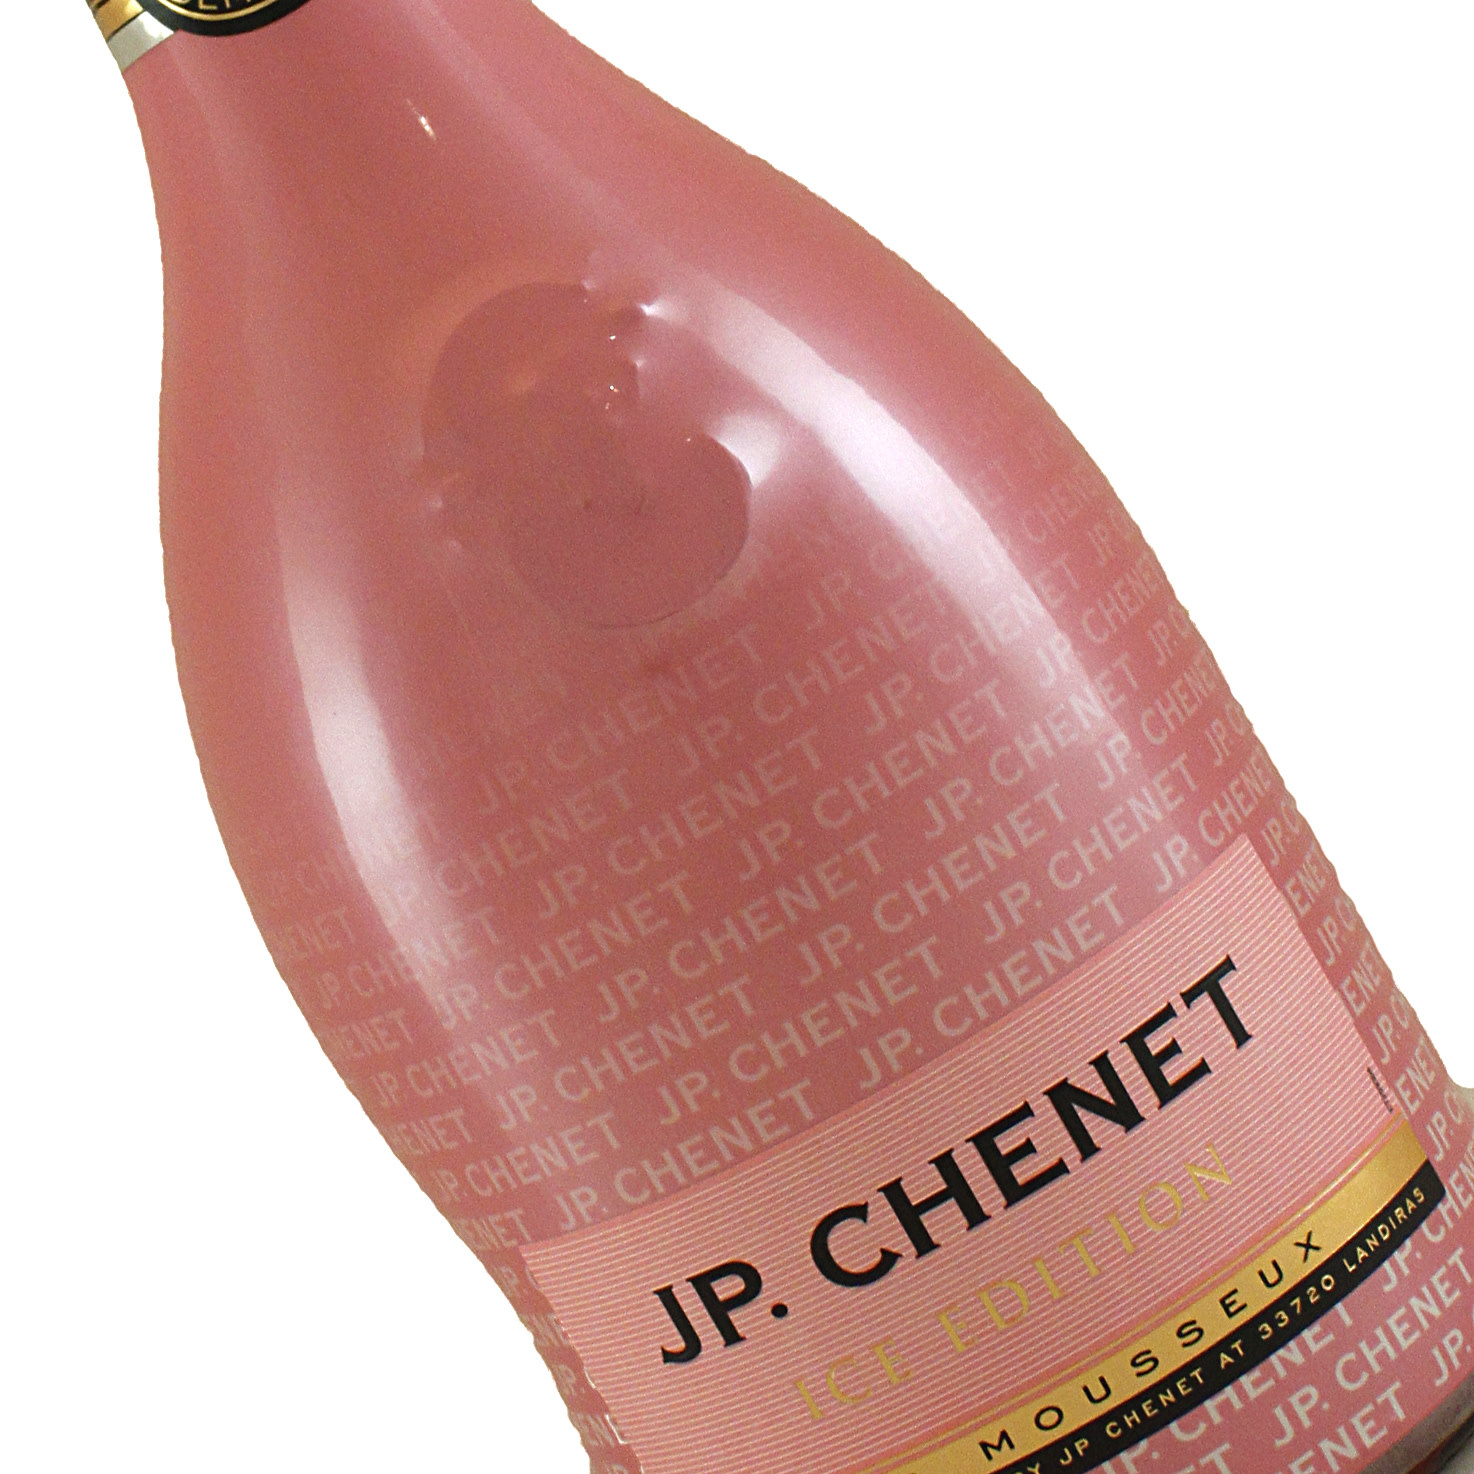 J.P. Chenet Ice Edition Rose Sparkling Wine